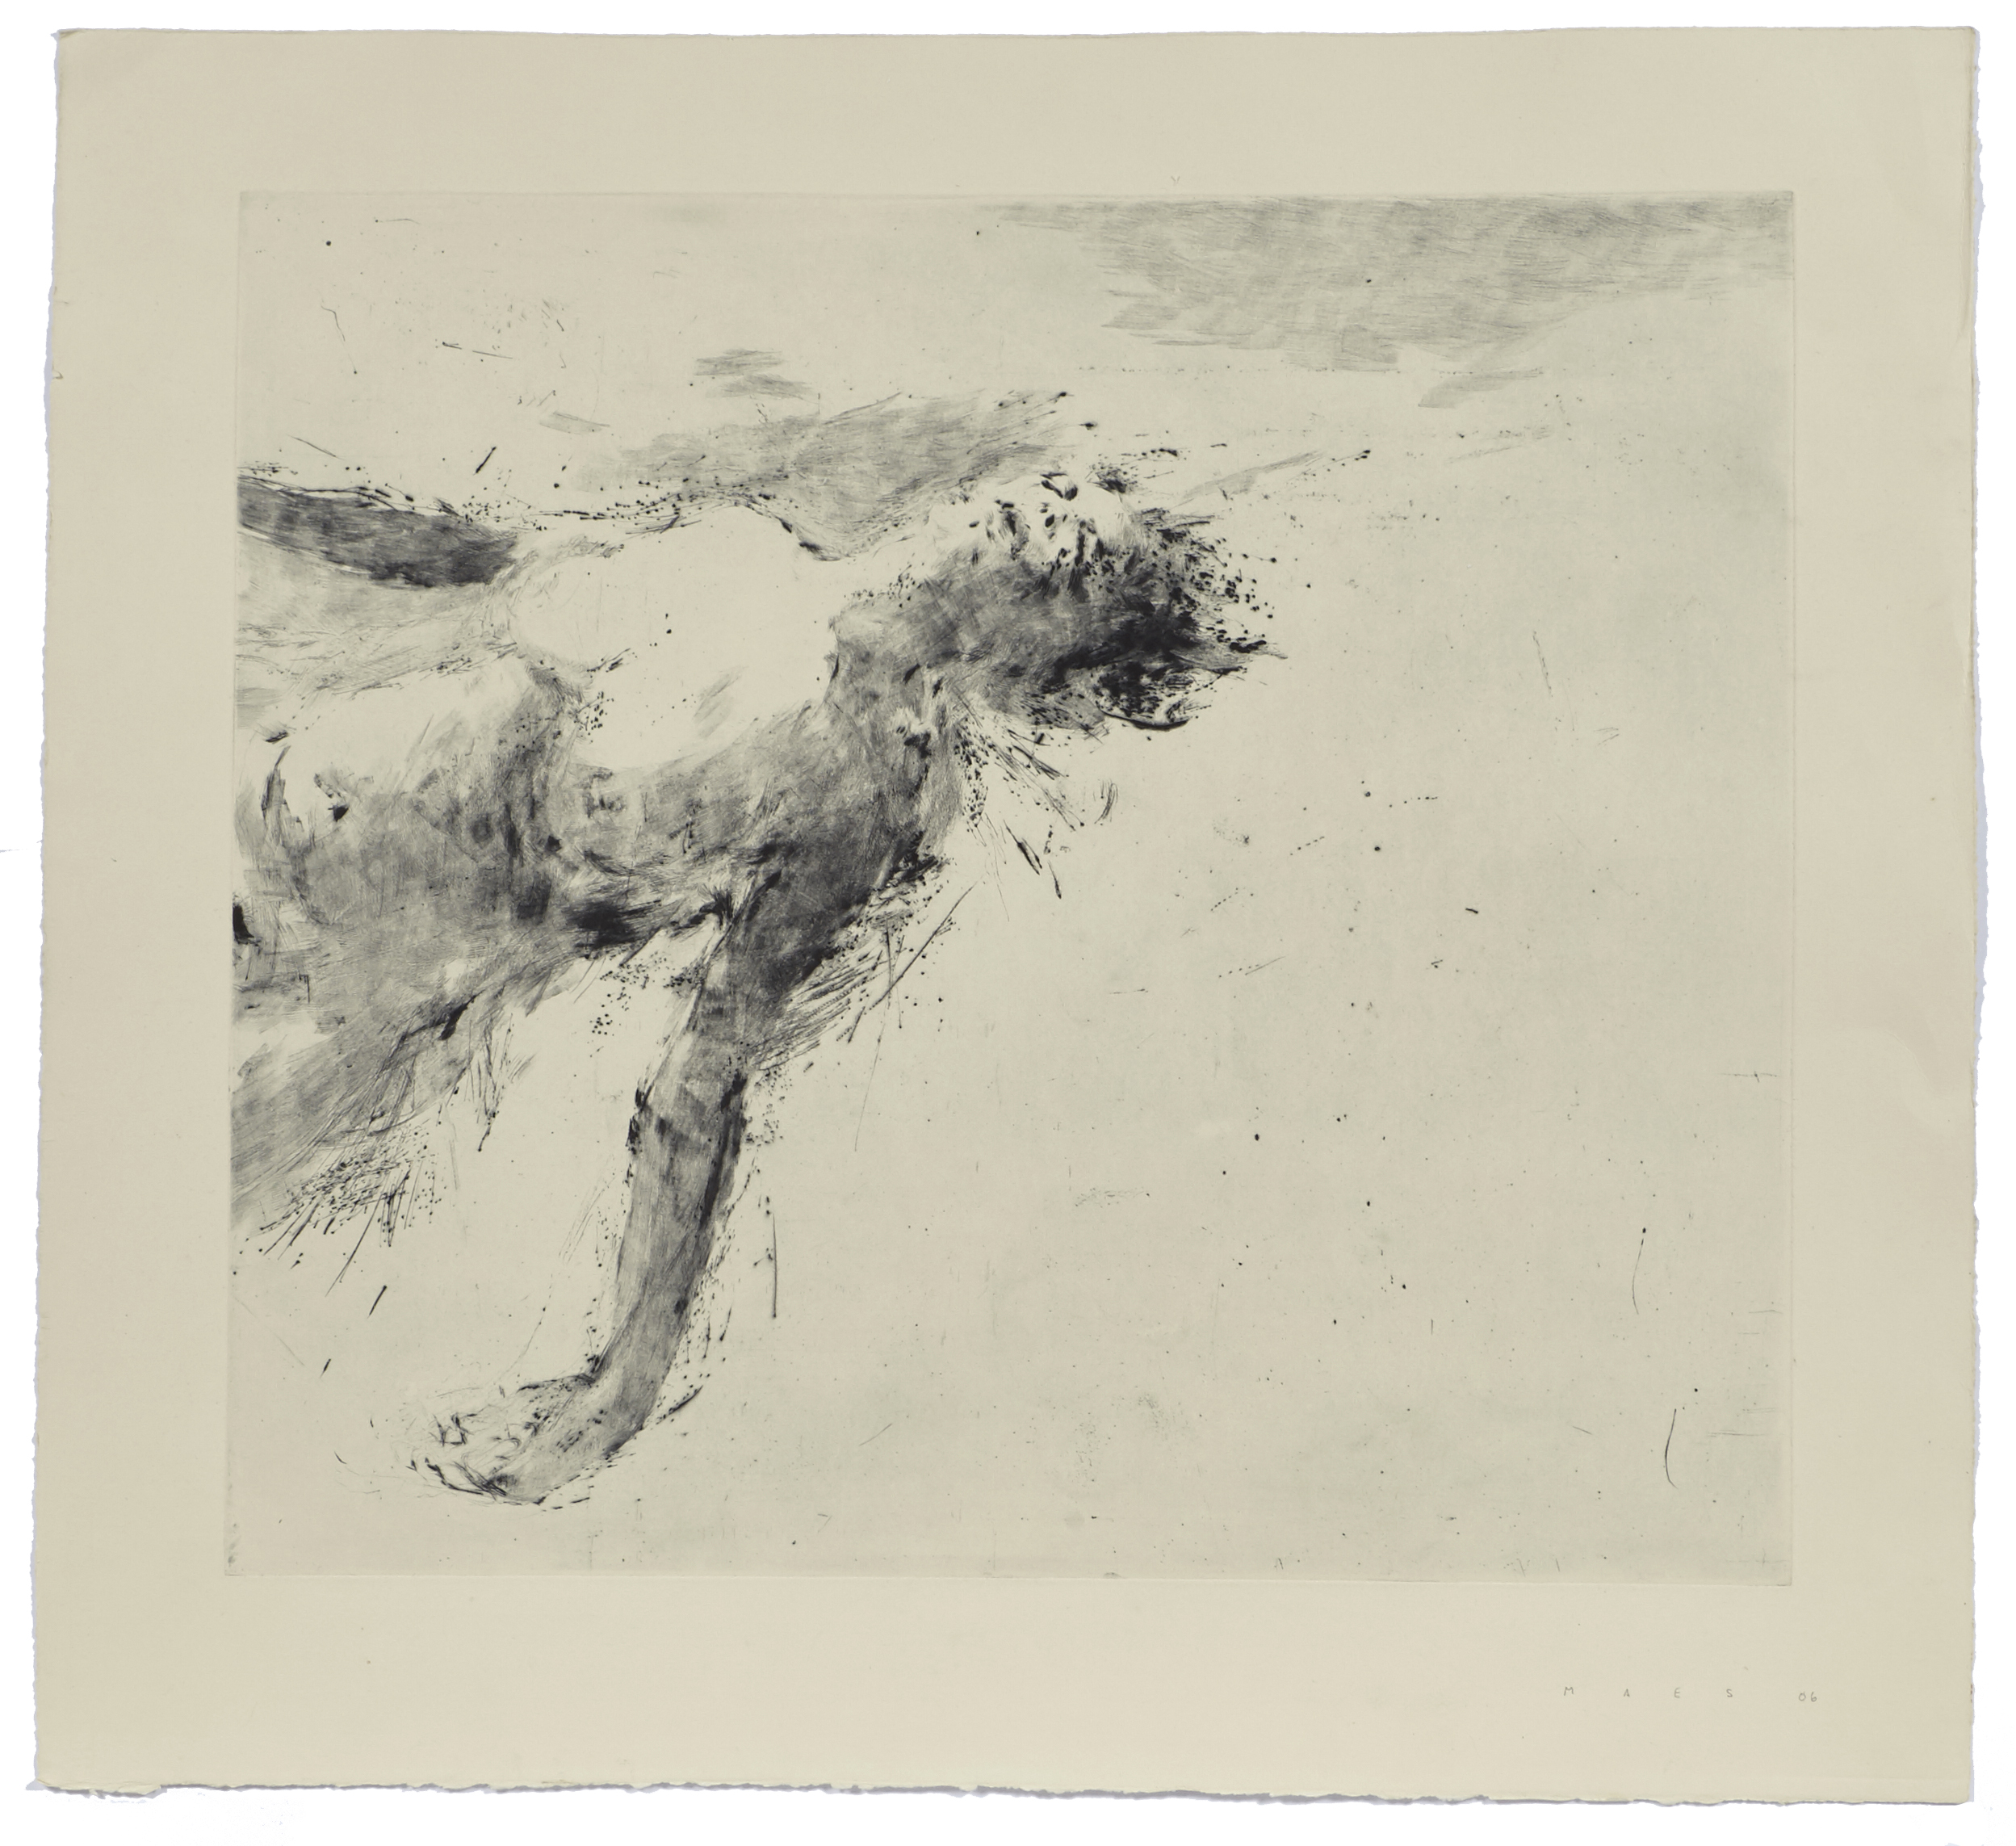 Floating III    2006 | 79 x 72 cm | Dry point